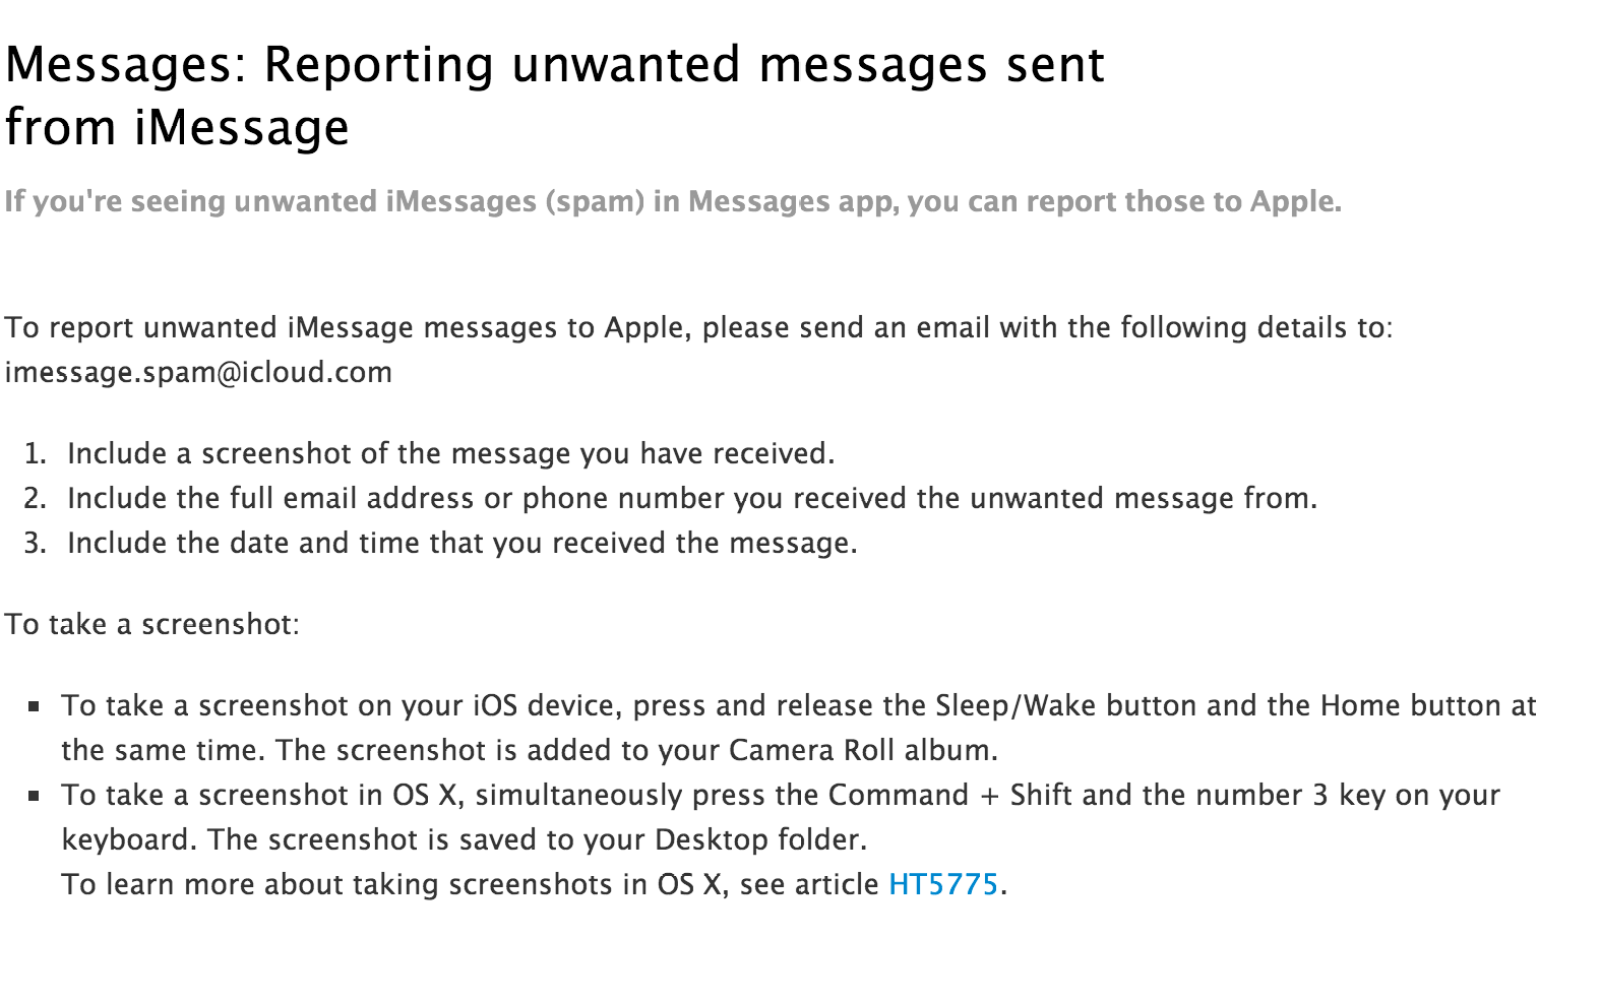 Apple opens iMessage spam reporting tool ahead of iOS 7